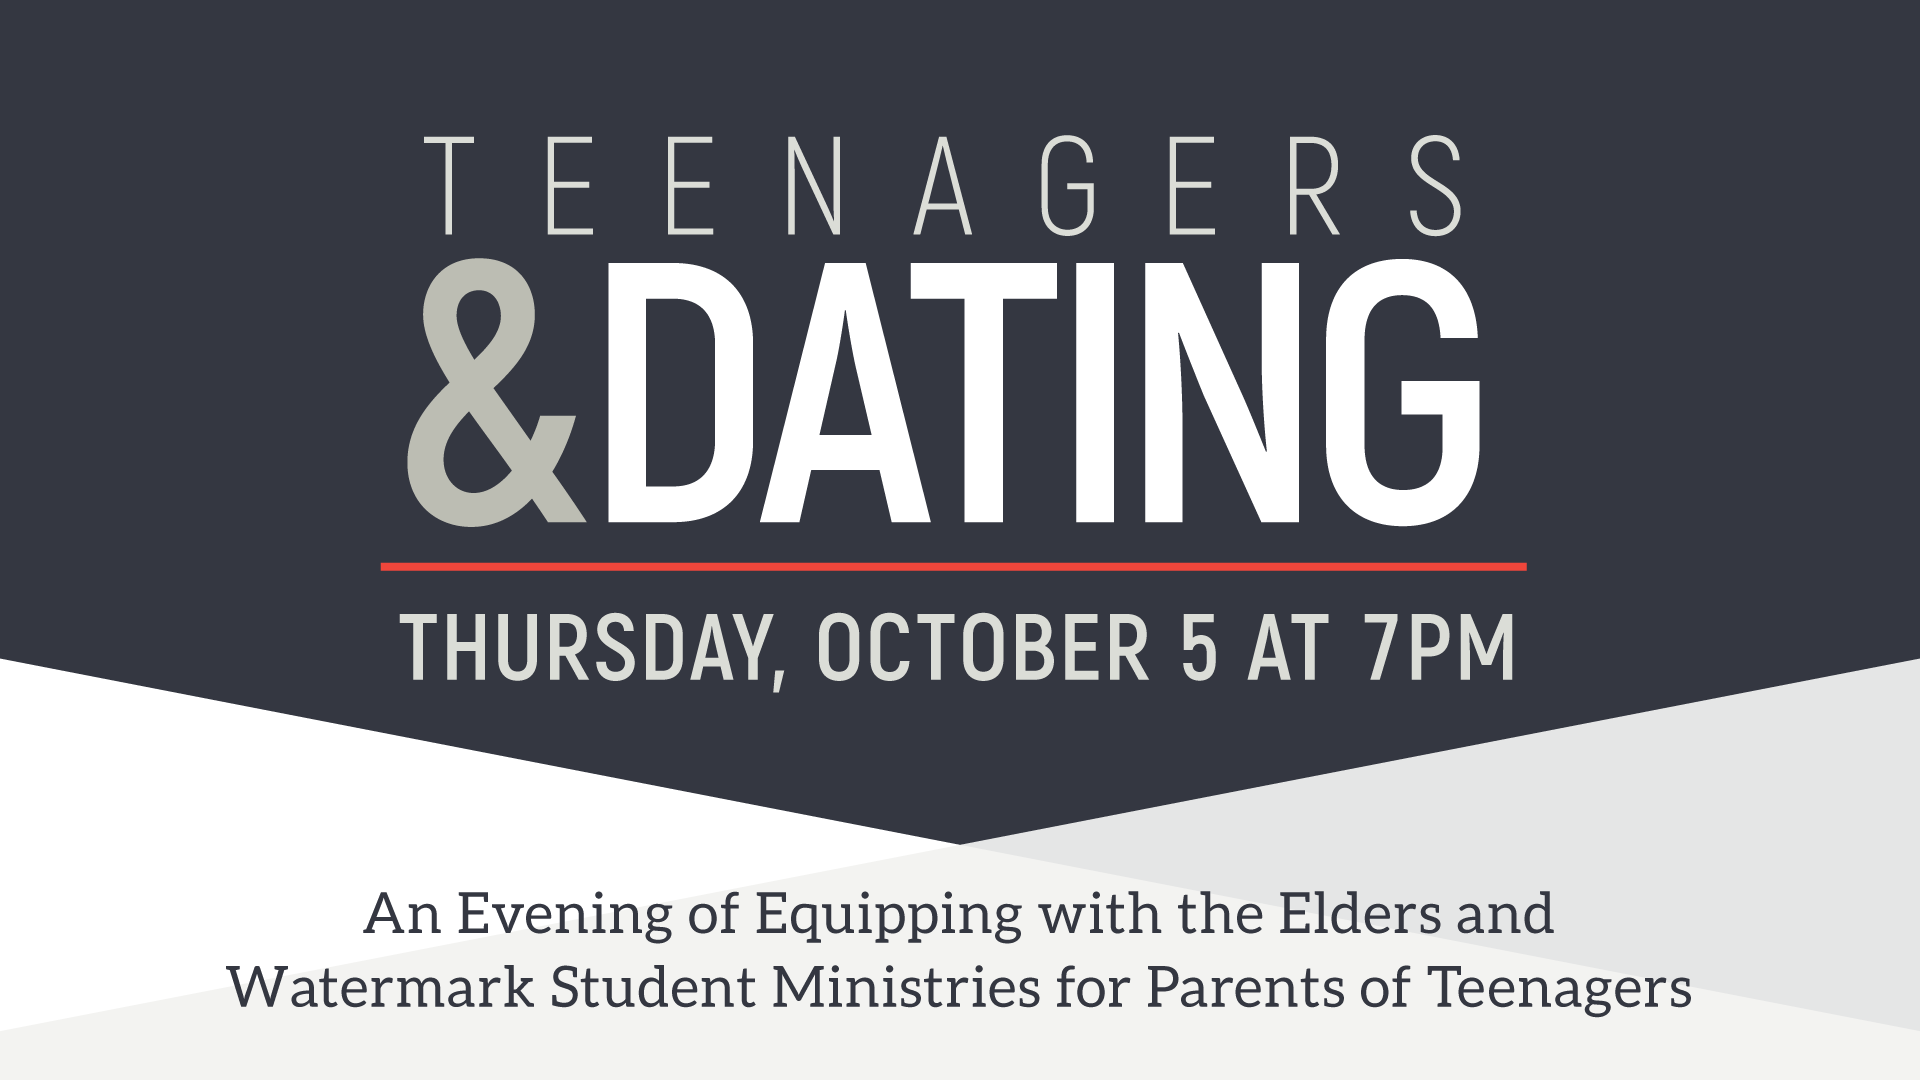 Teenagers & Dating